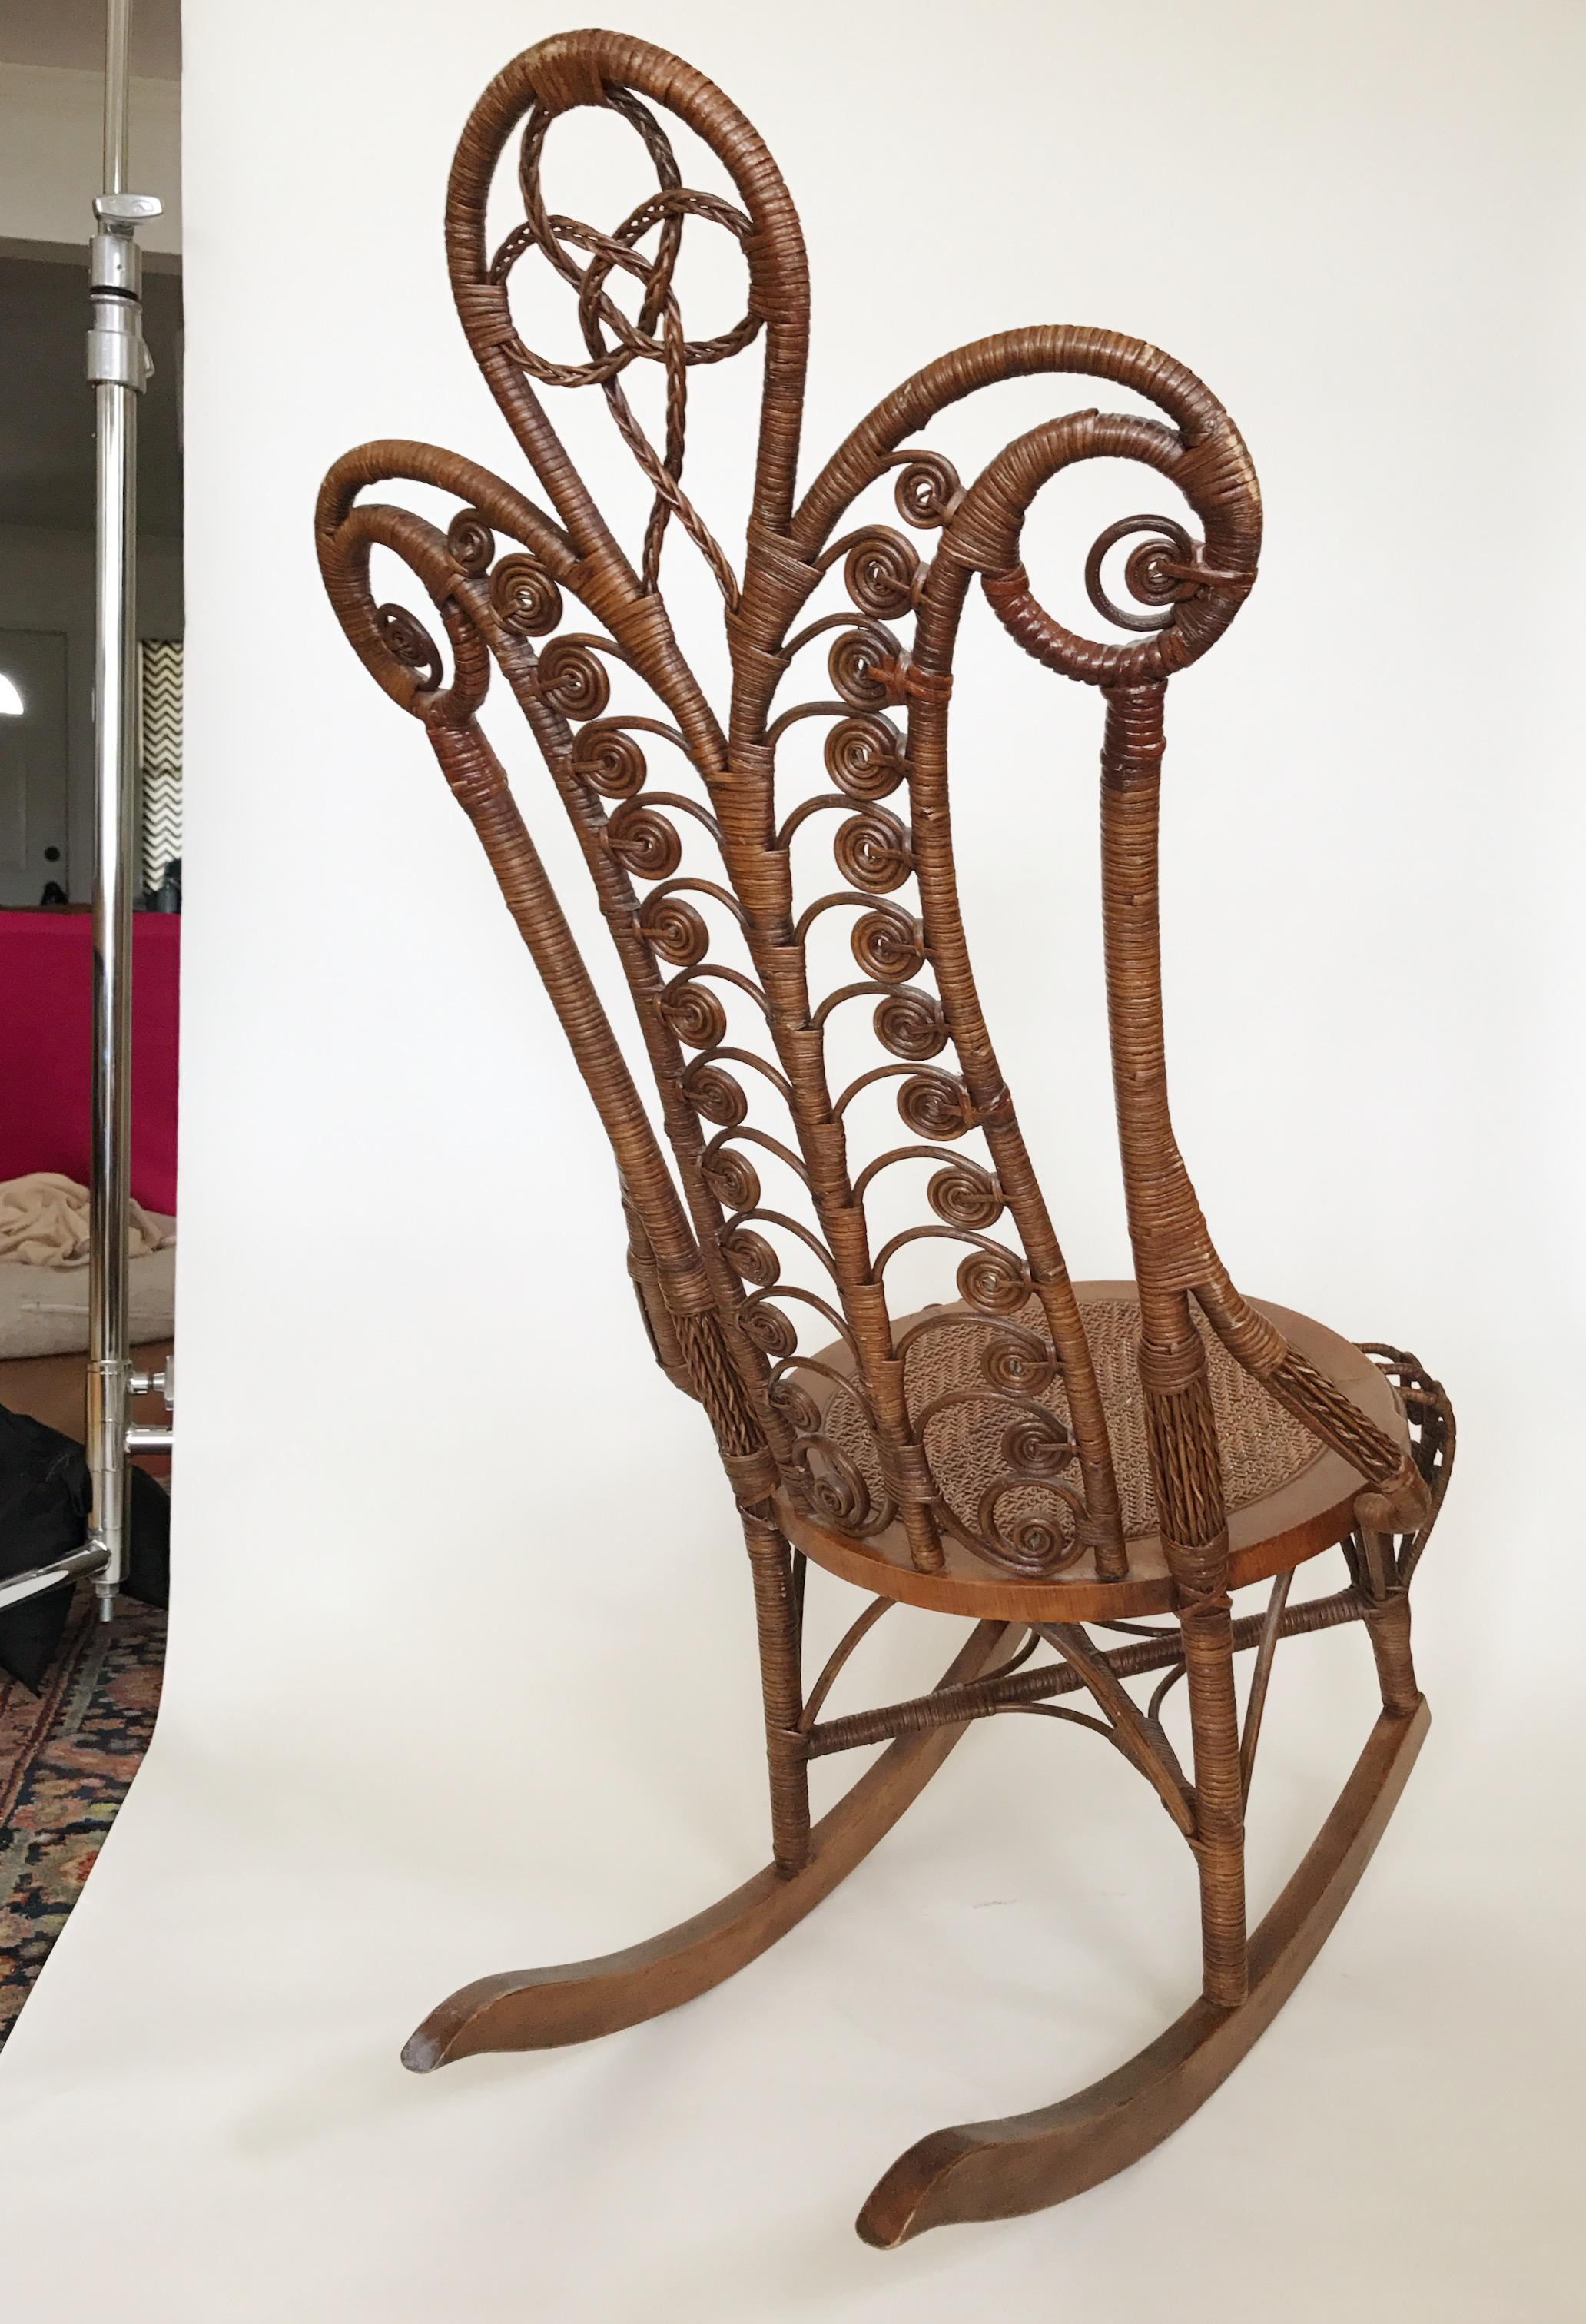 wicker rocking chair image 5 of 6